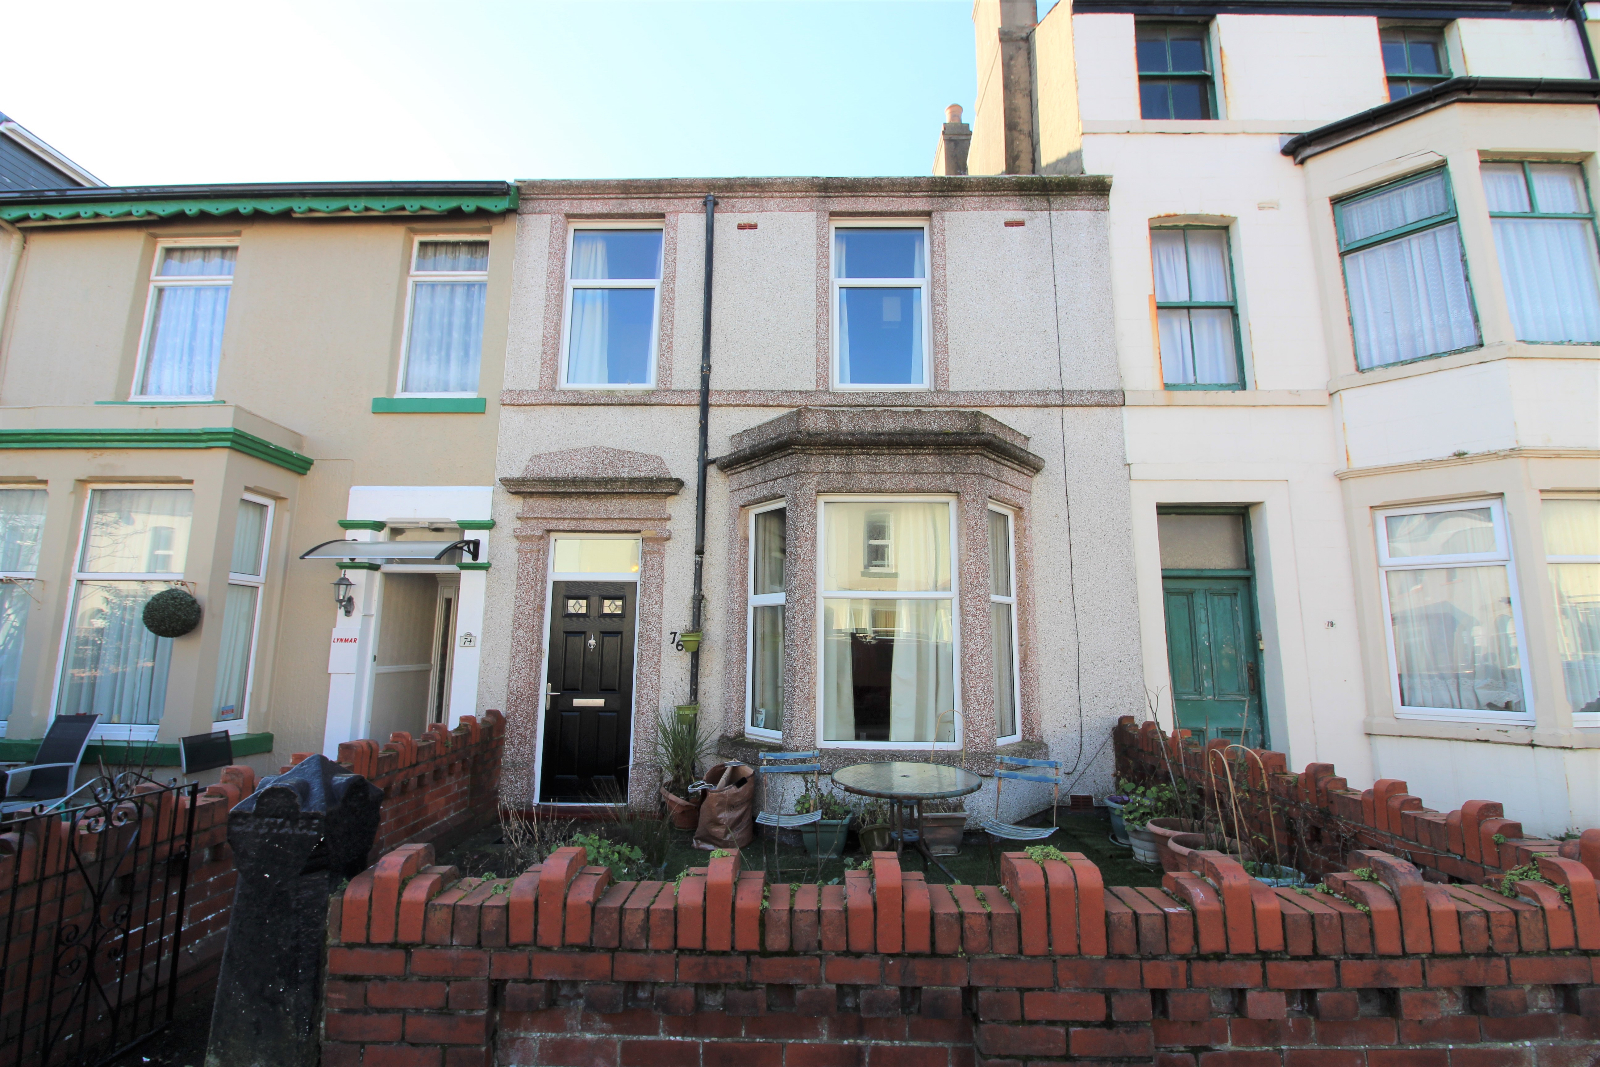 4 Bed Terrace High Street Blackpool Fy1 2bp The Square